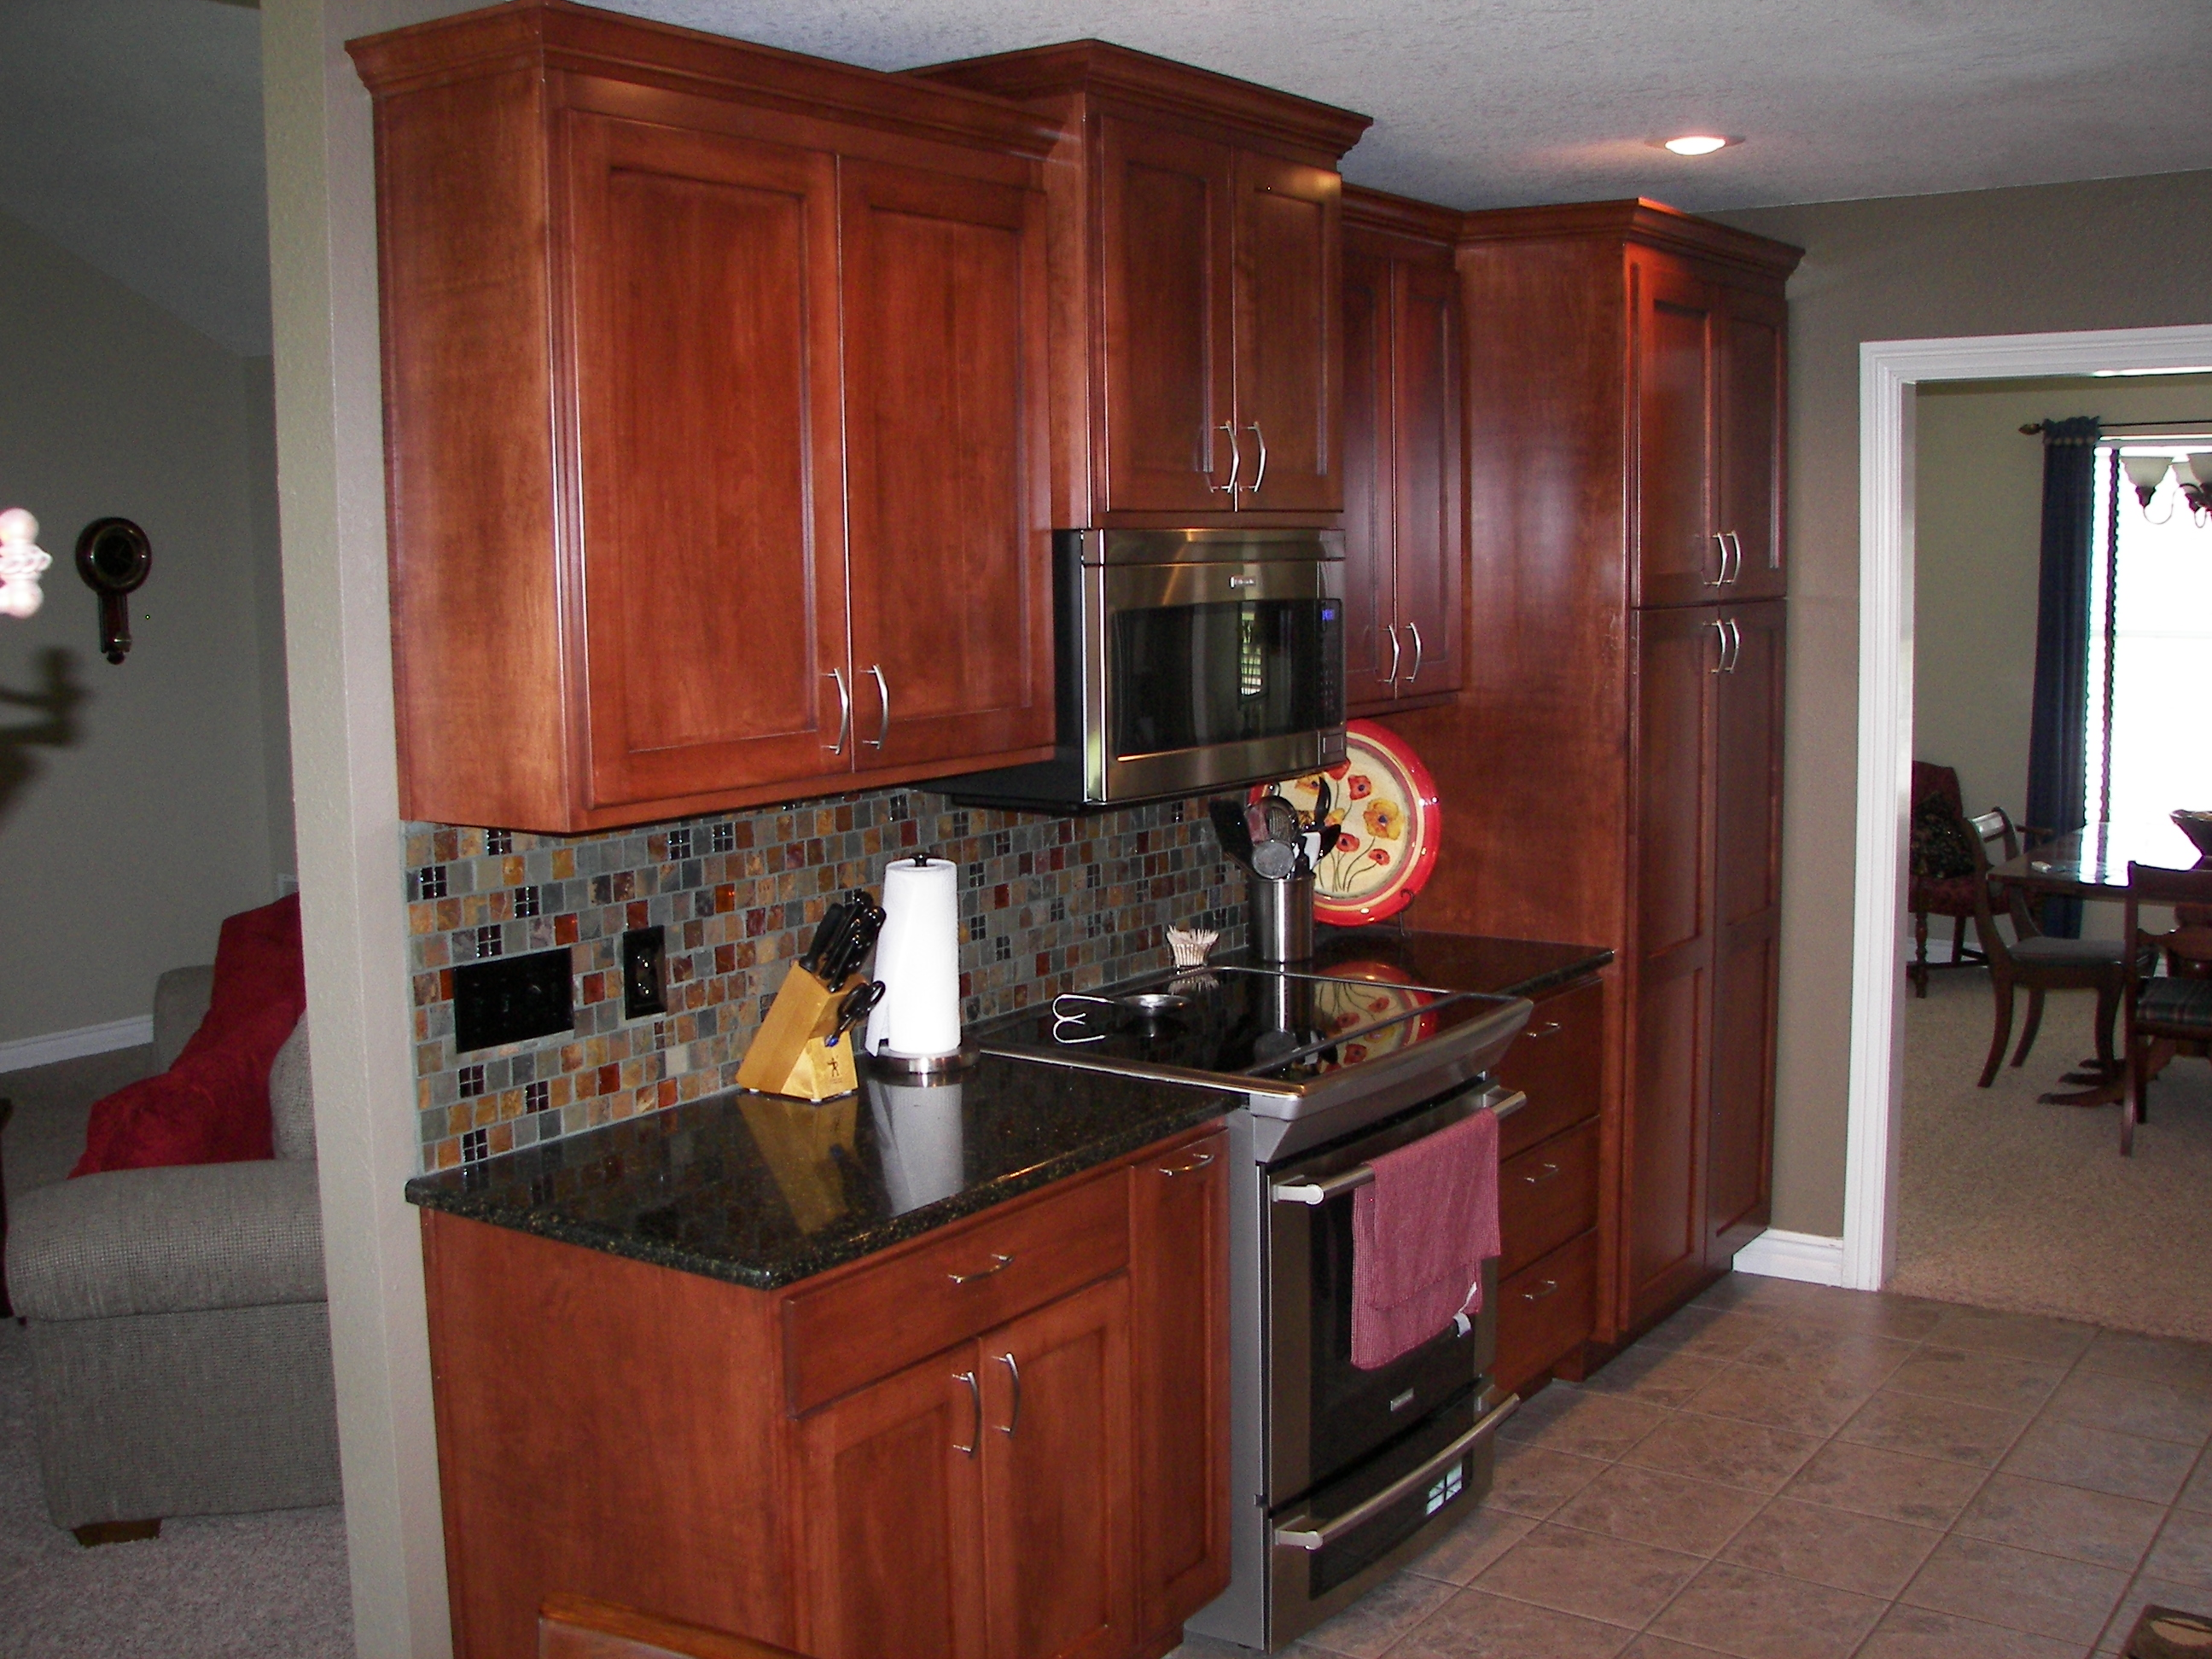 janacek-construction-kitchen-remodel-2-after